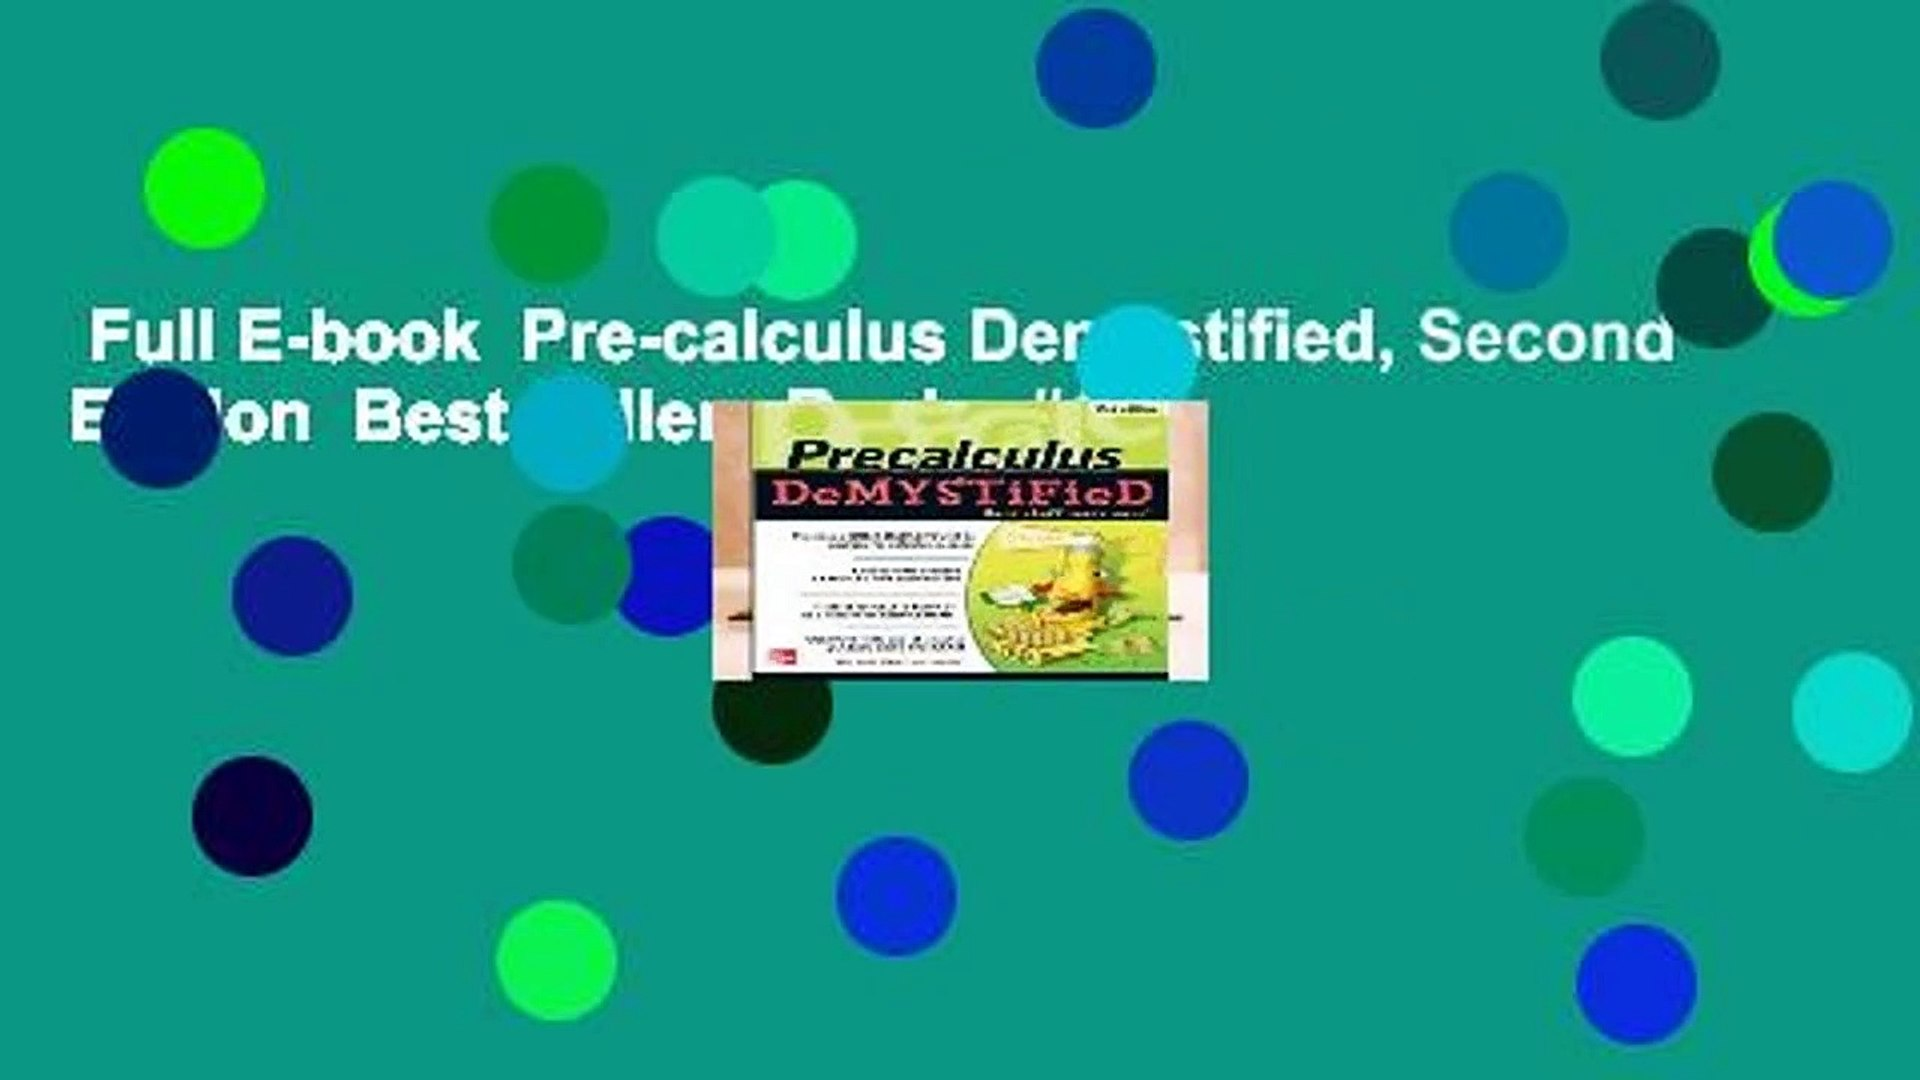 Full E-book Pre-calculus Demystified, Second Edition Best Sellers Rank : #1